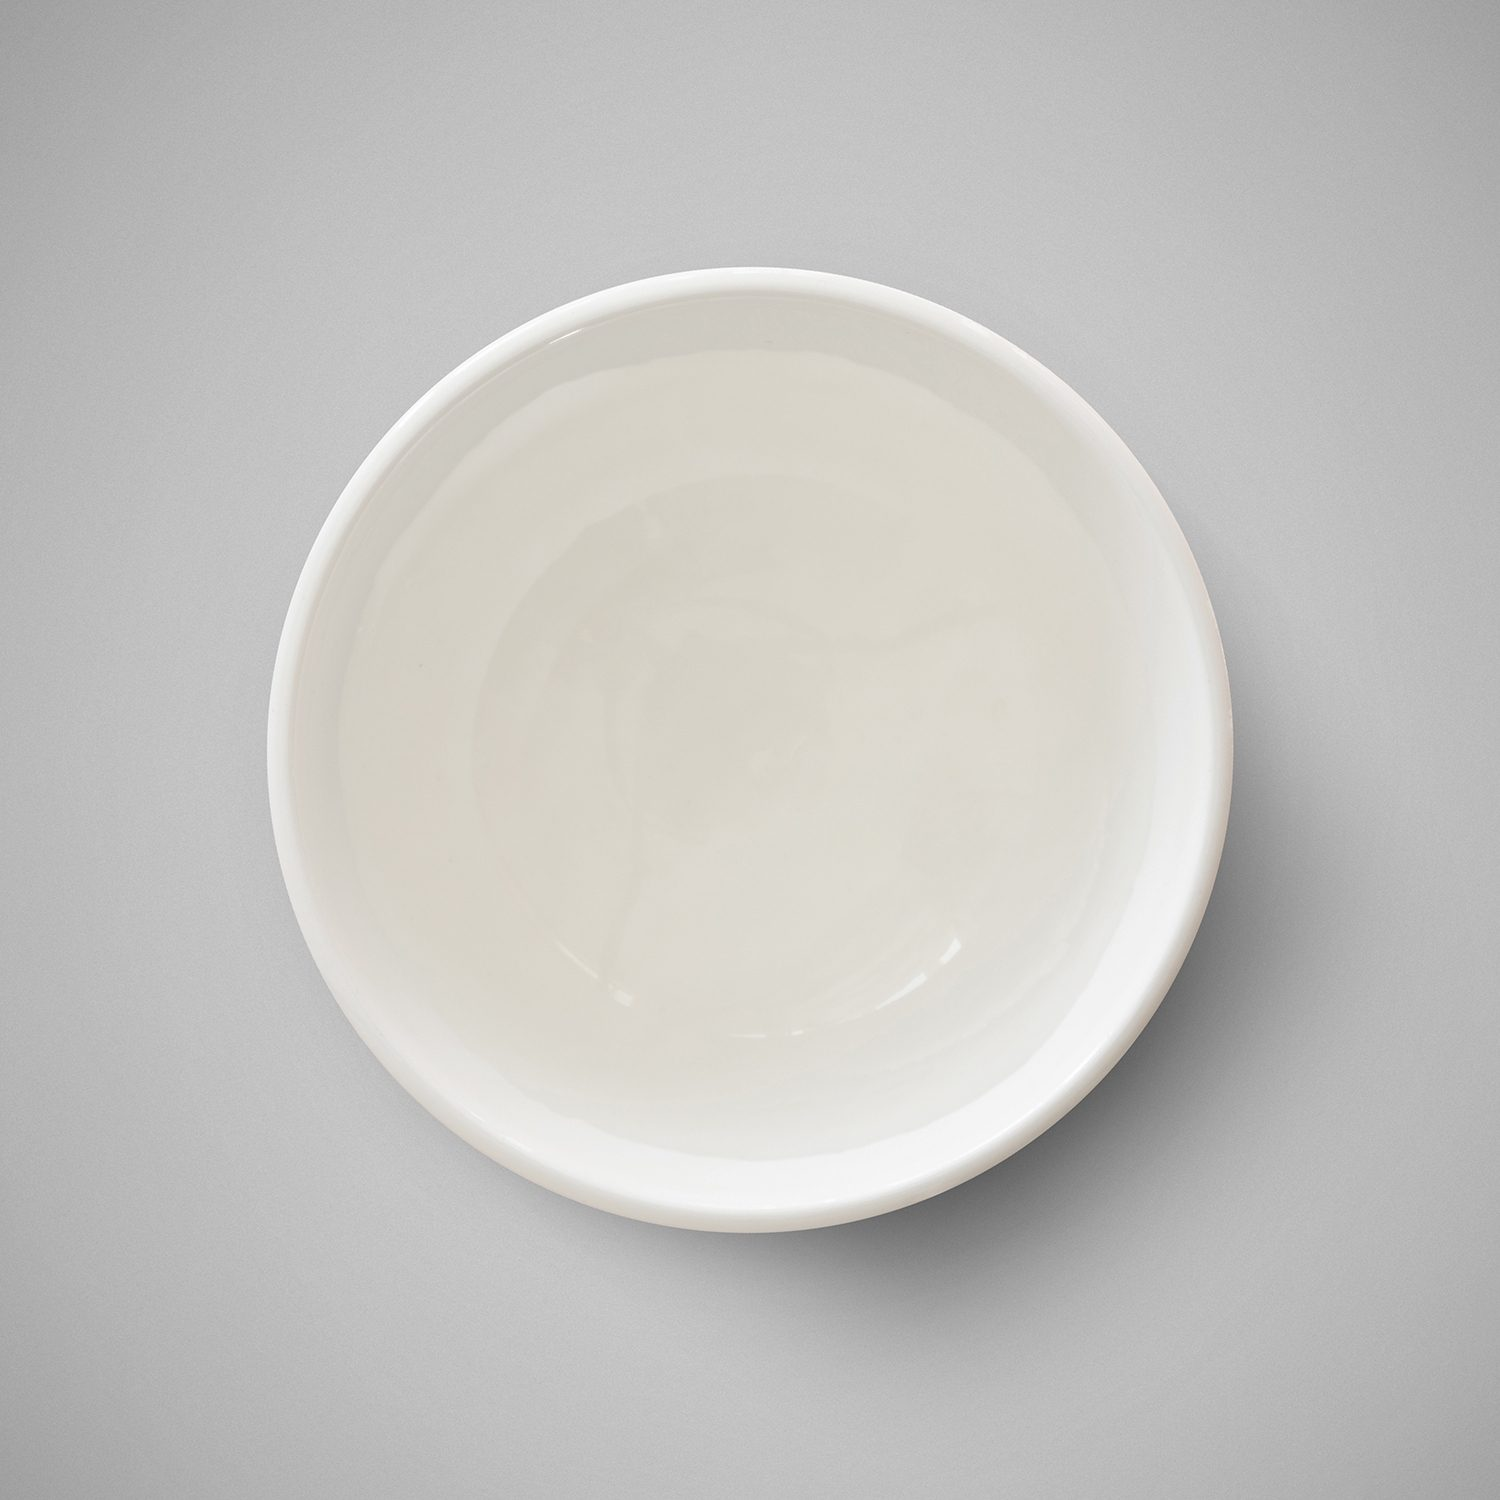 White melt and pour soap base in a small bowl on a grey background.